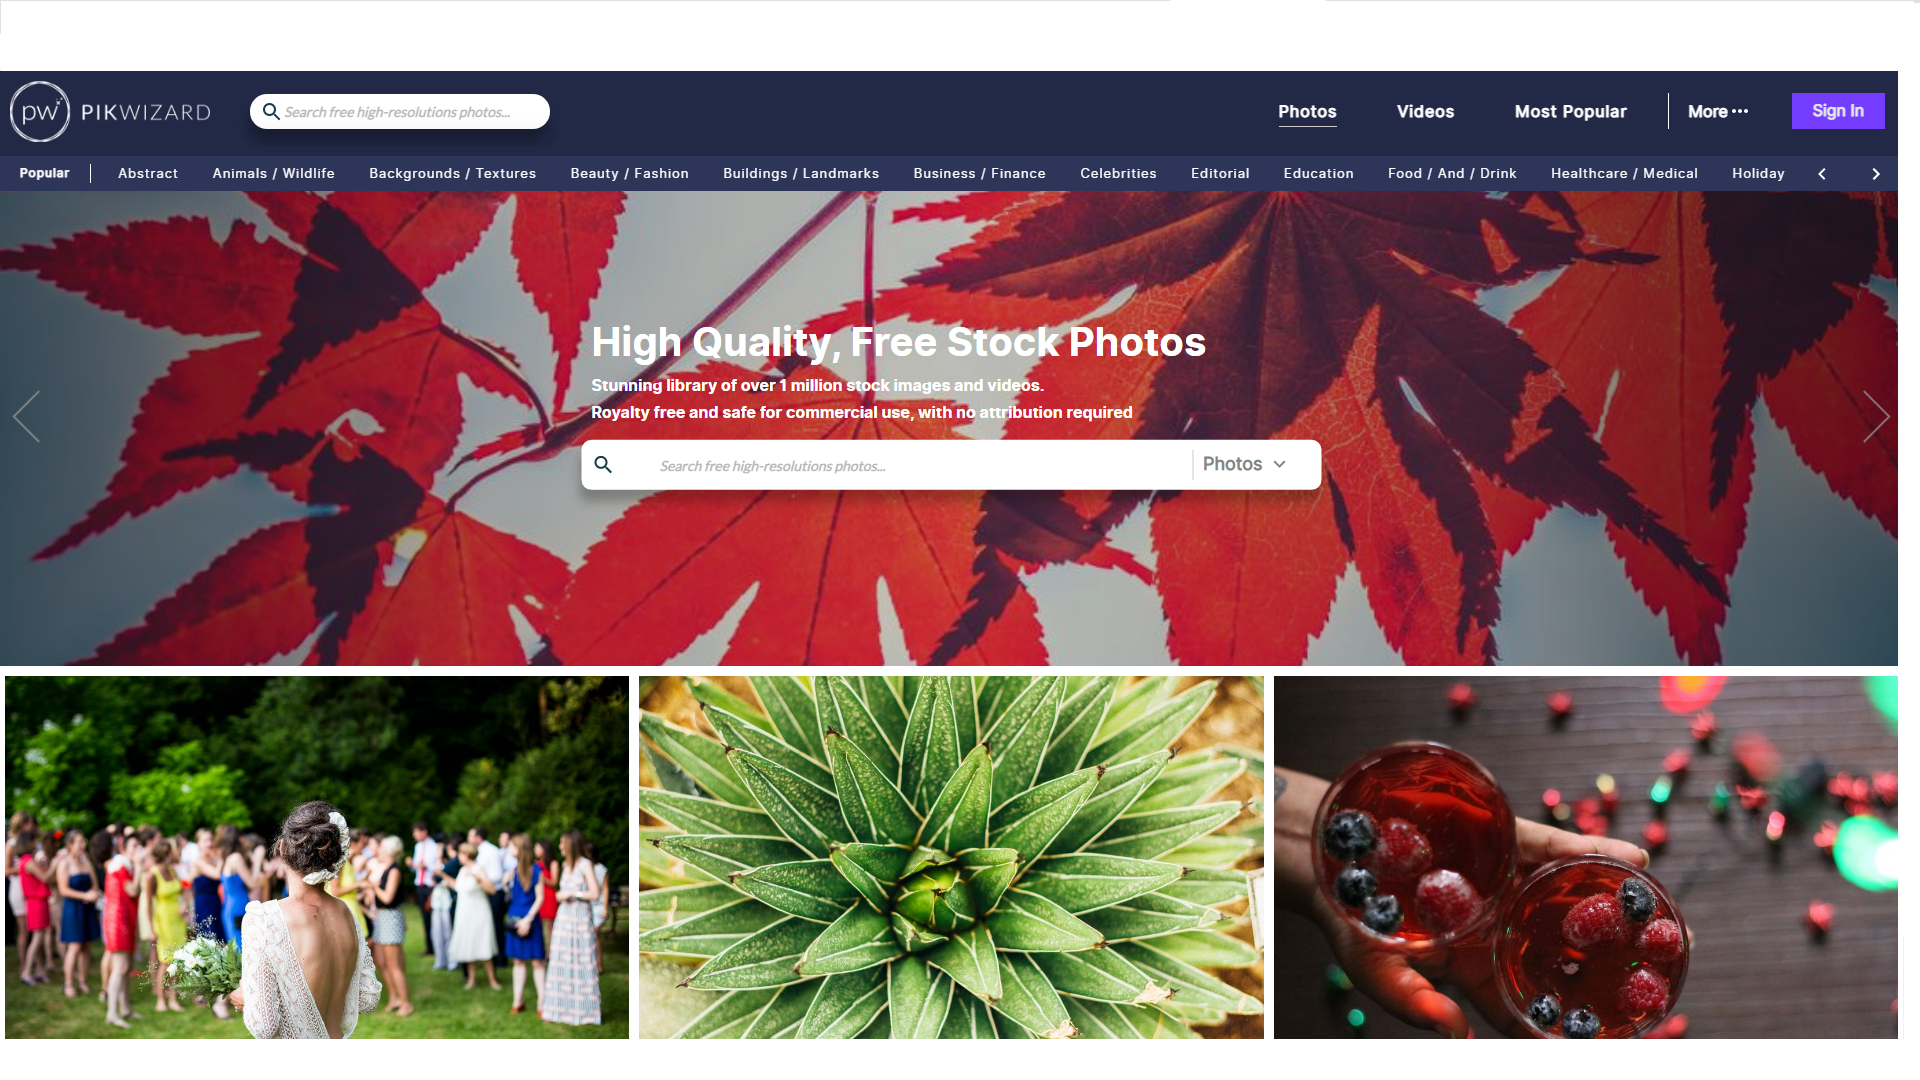 Our Top 10 Free Stock Image Sites For Designers